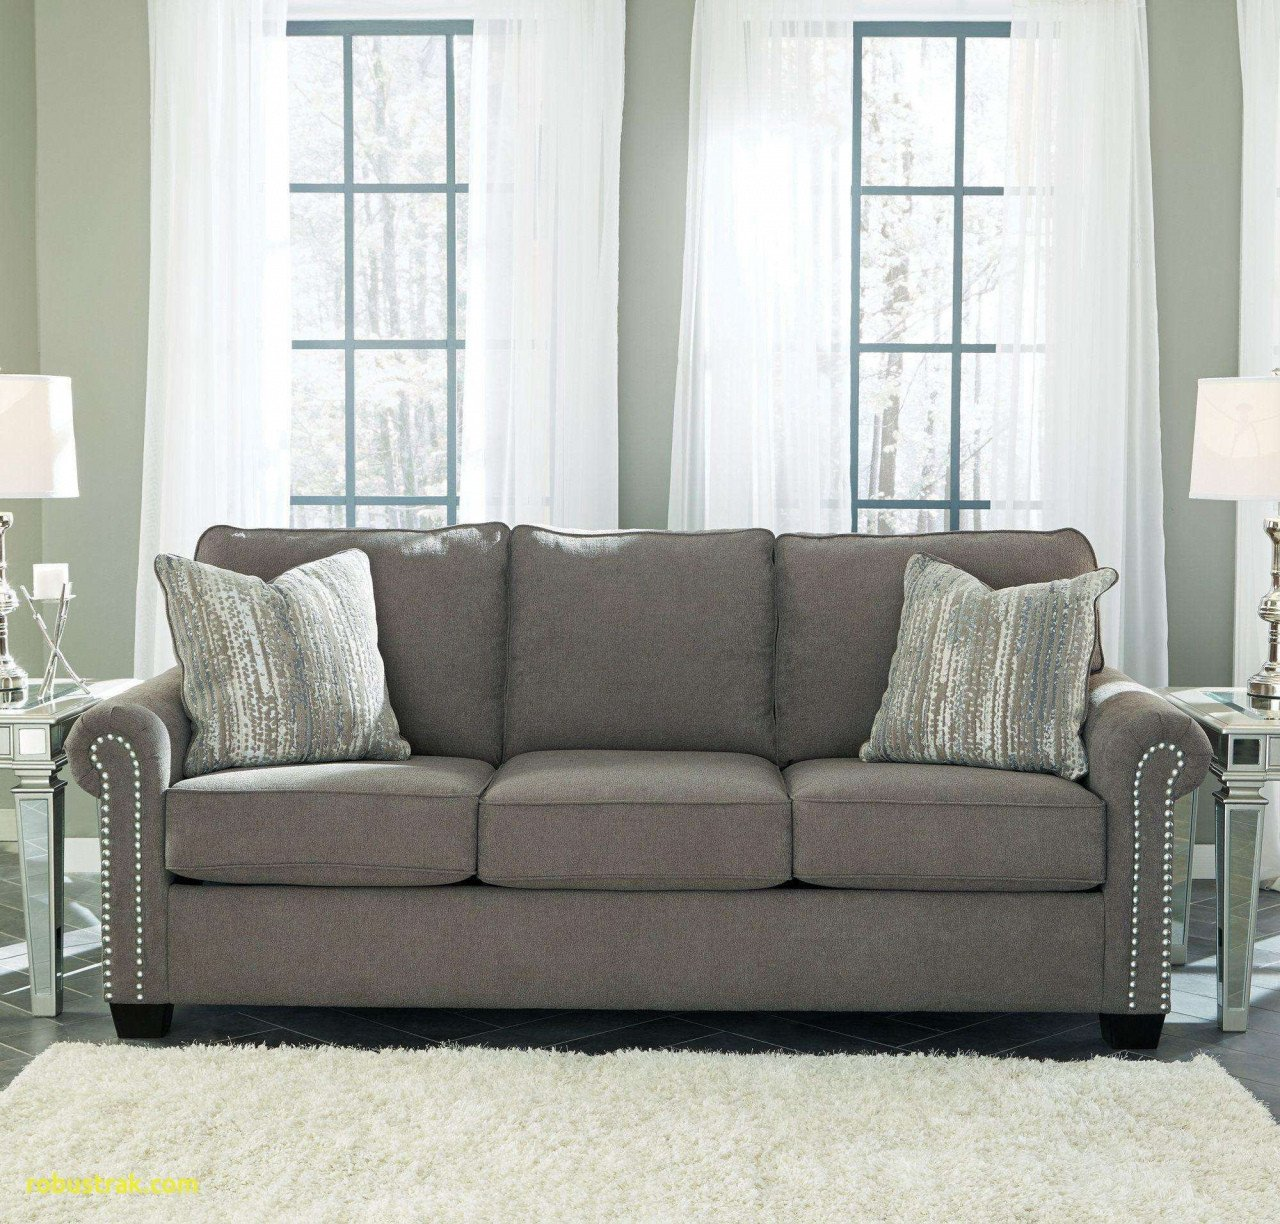 Blue and Gray Bedroom Lovely Gray Couch Living Room — Procura Home Blog